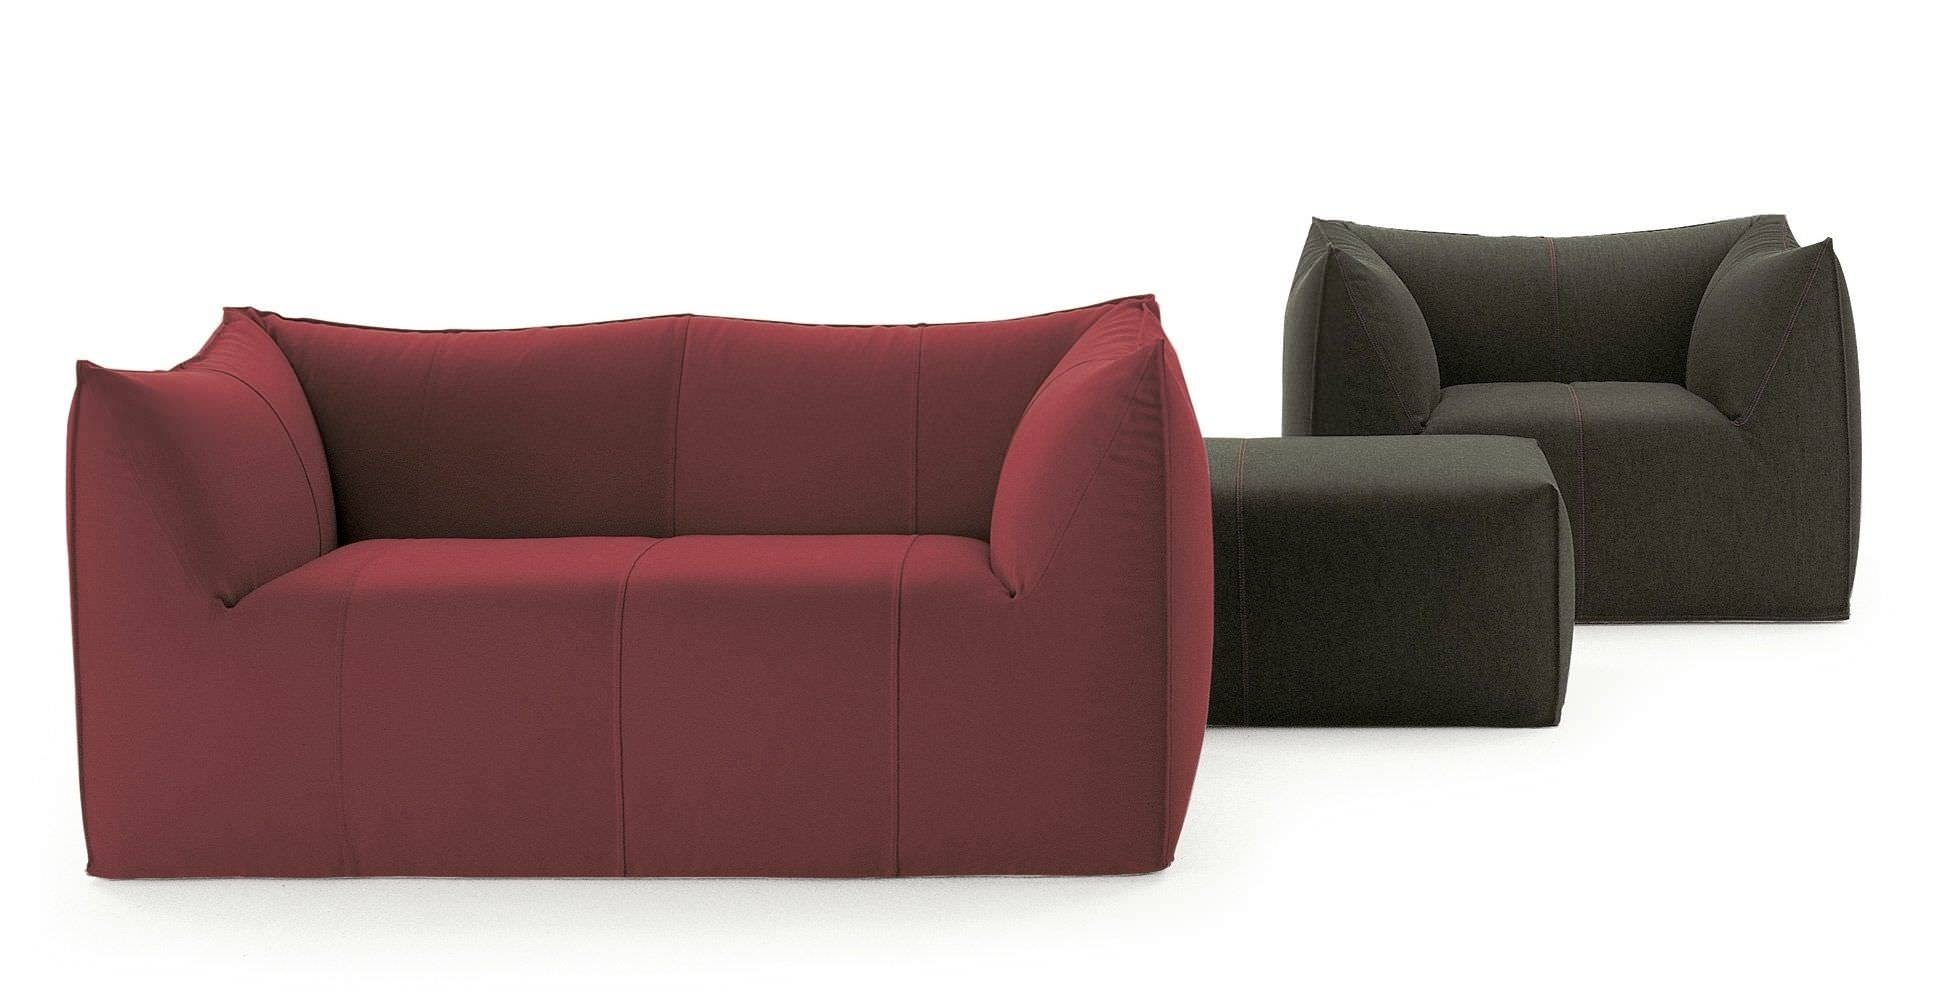 Contemporary Sofa / Leather / Fabric /mario Bellini – Le Pertaining To Bellini Sofas (View 4 of 15)